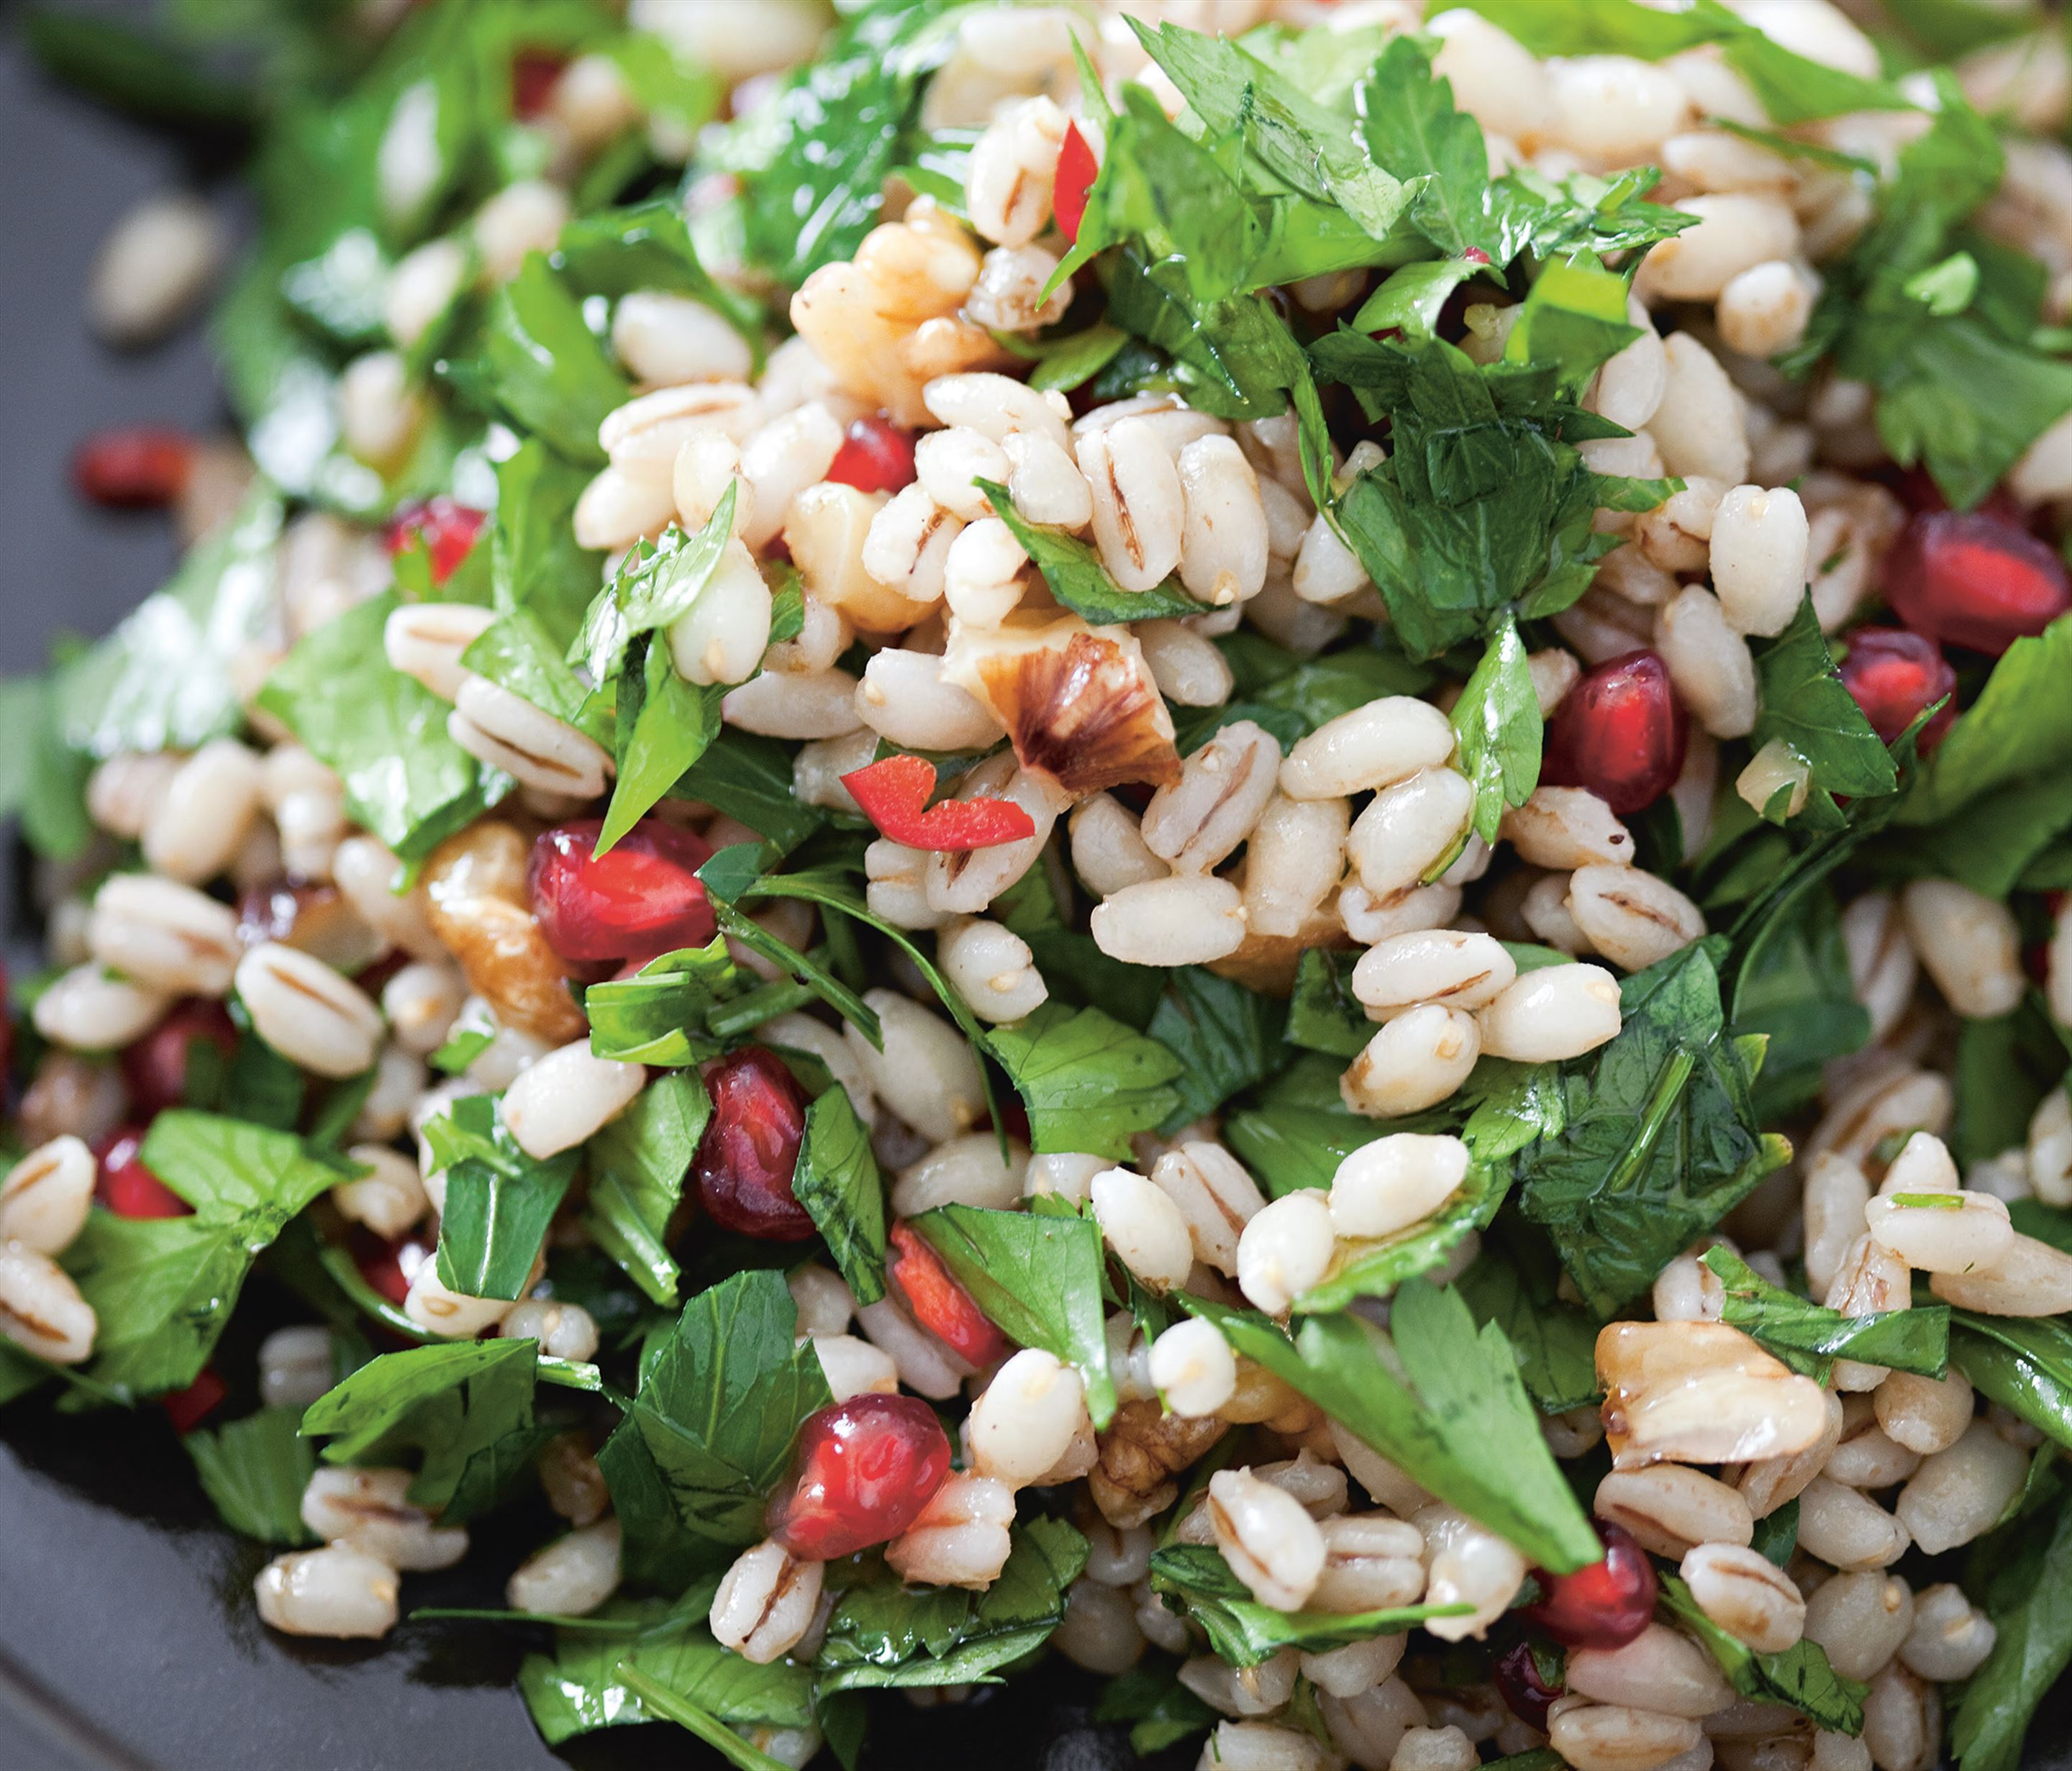 Spicy barley salad